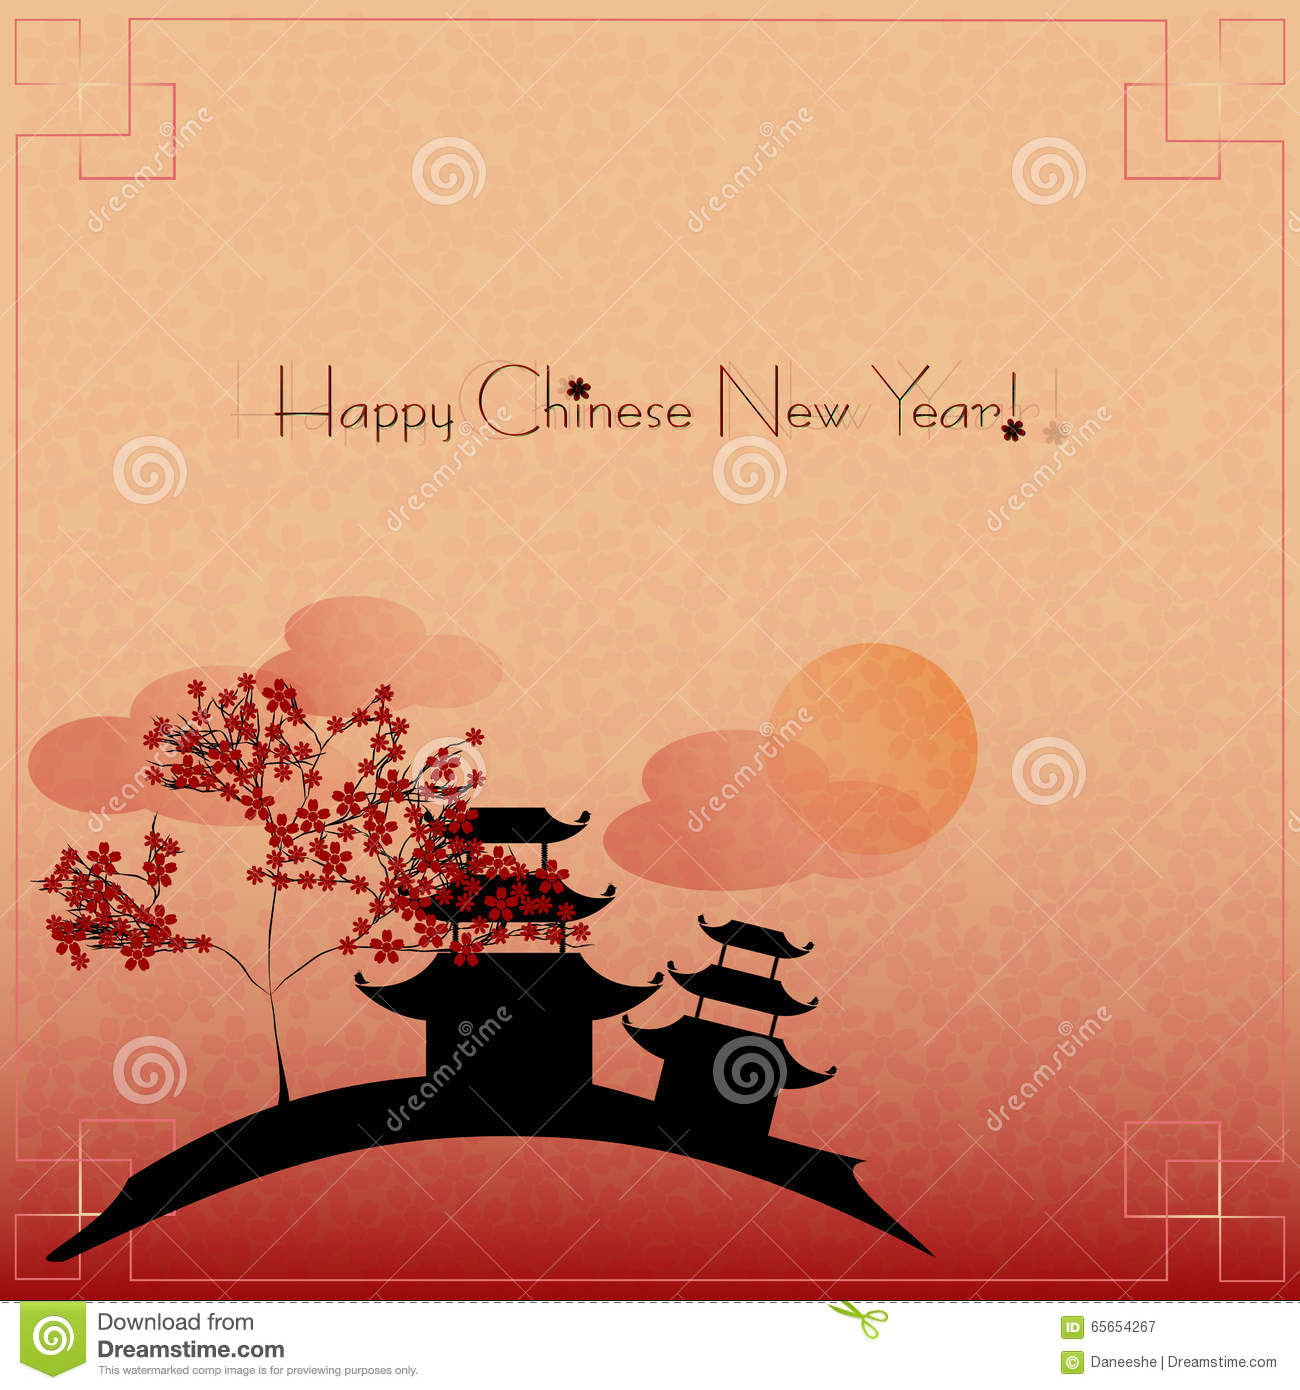 Holiday Greeting Postcard To Chinese New Year Stock Vector